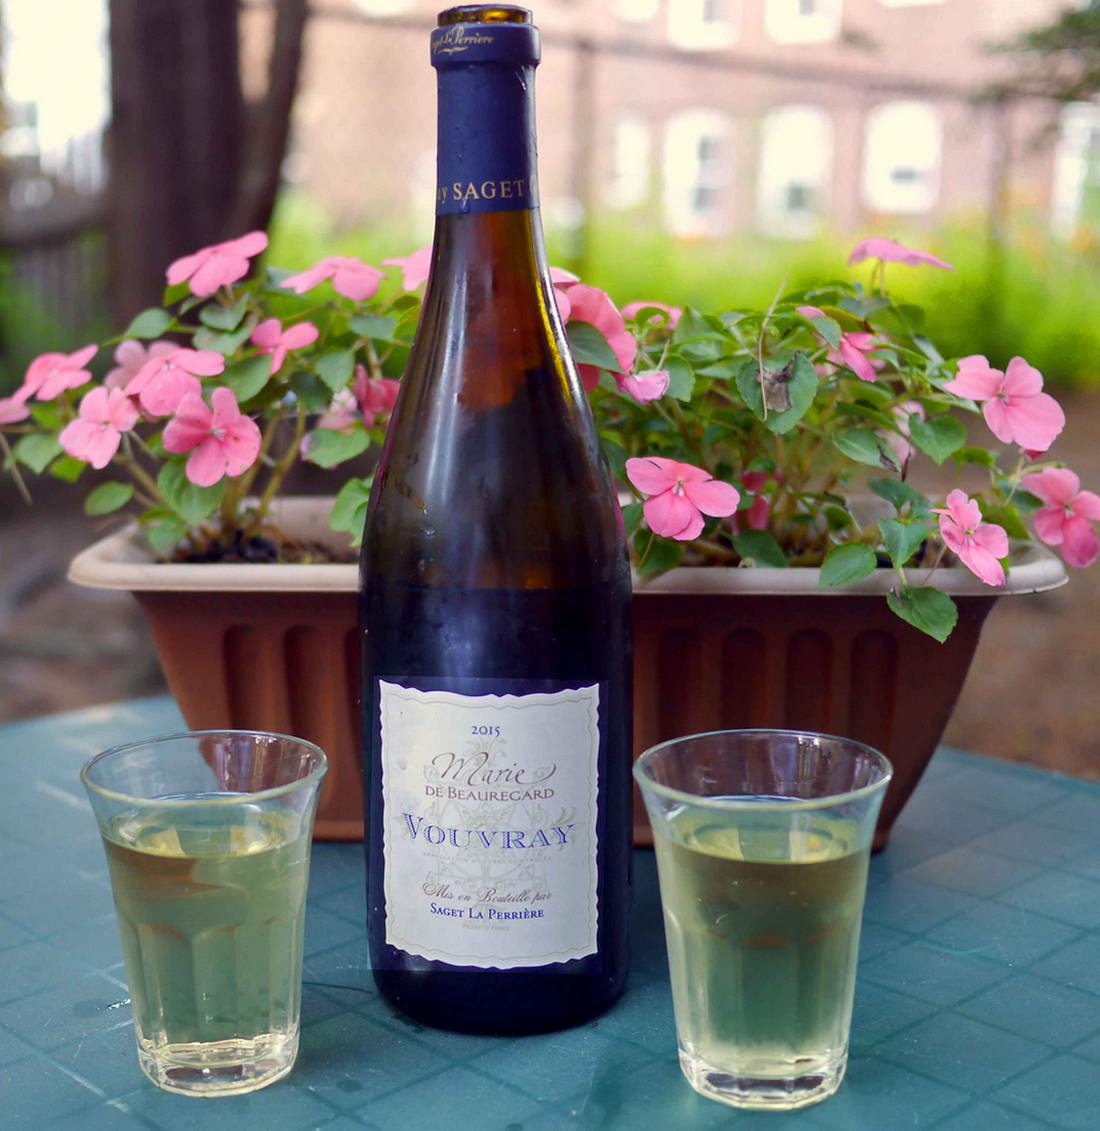 Marie de Beauregard Vouvray at backyard picnic